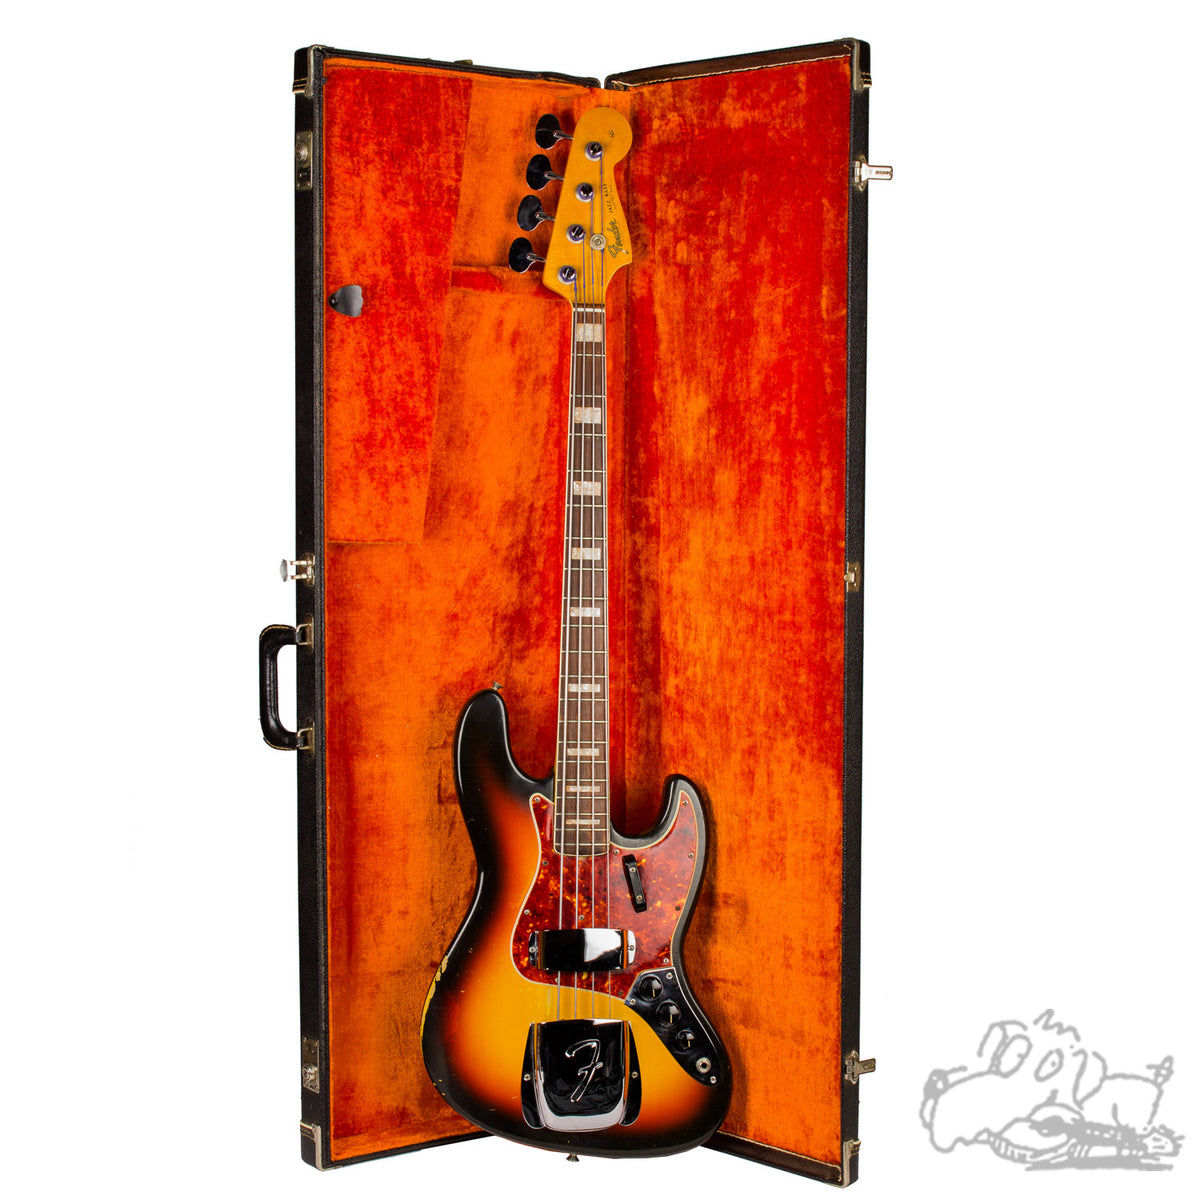 1966 Fender Jazz Bass in Sunburst